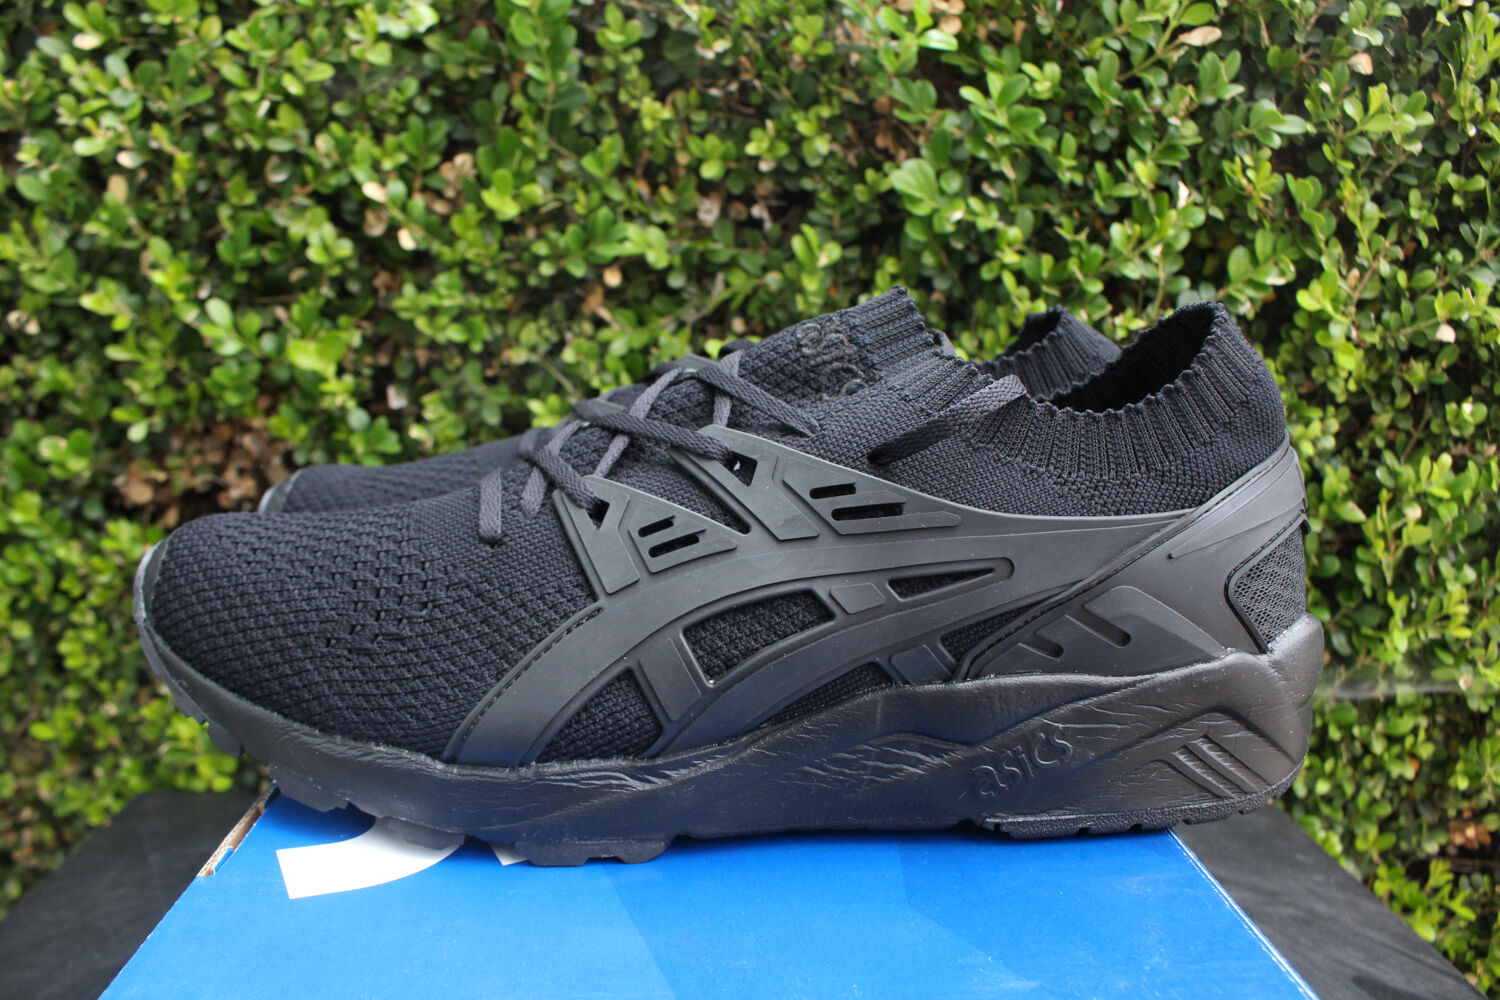 ASICS GEL KAYANO TRAINER KNIT SZ 12 TRIPLE noir H705N 9090